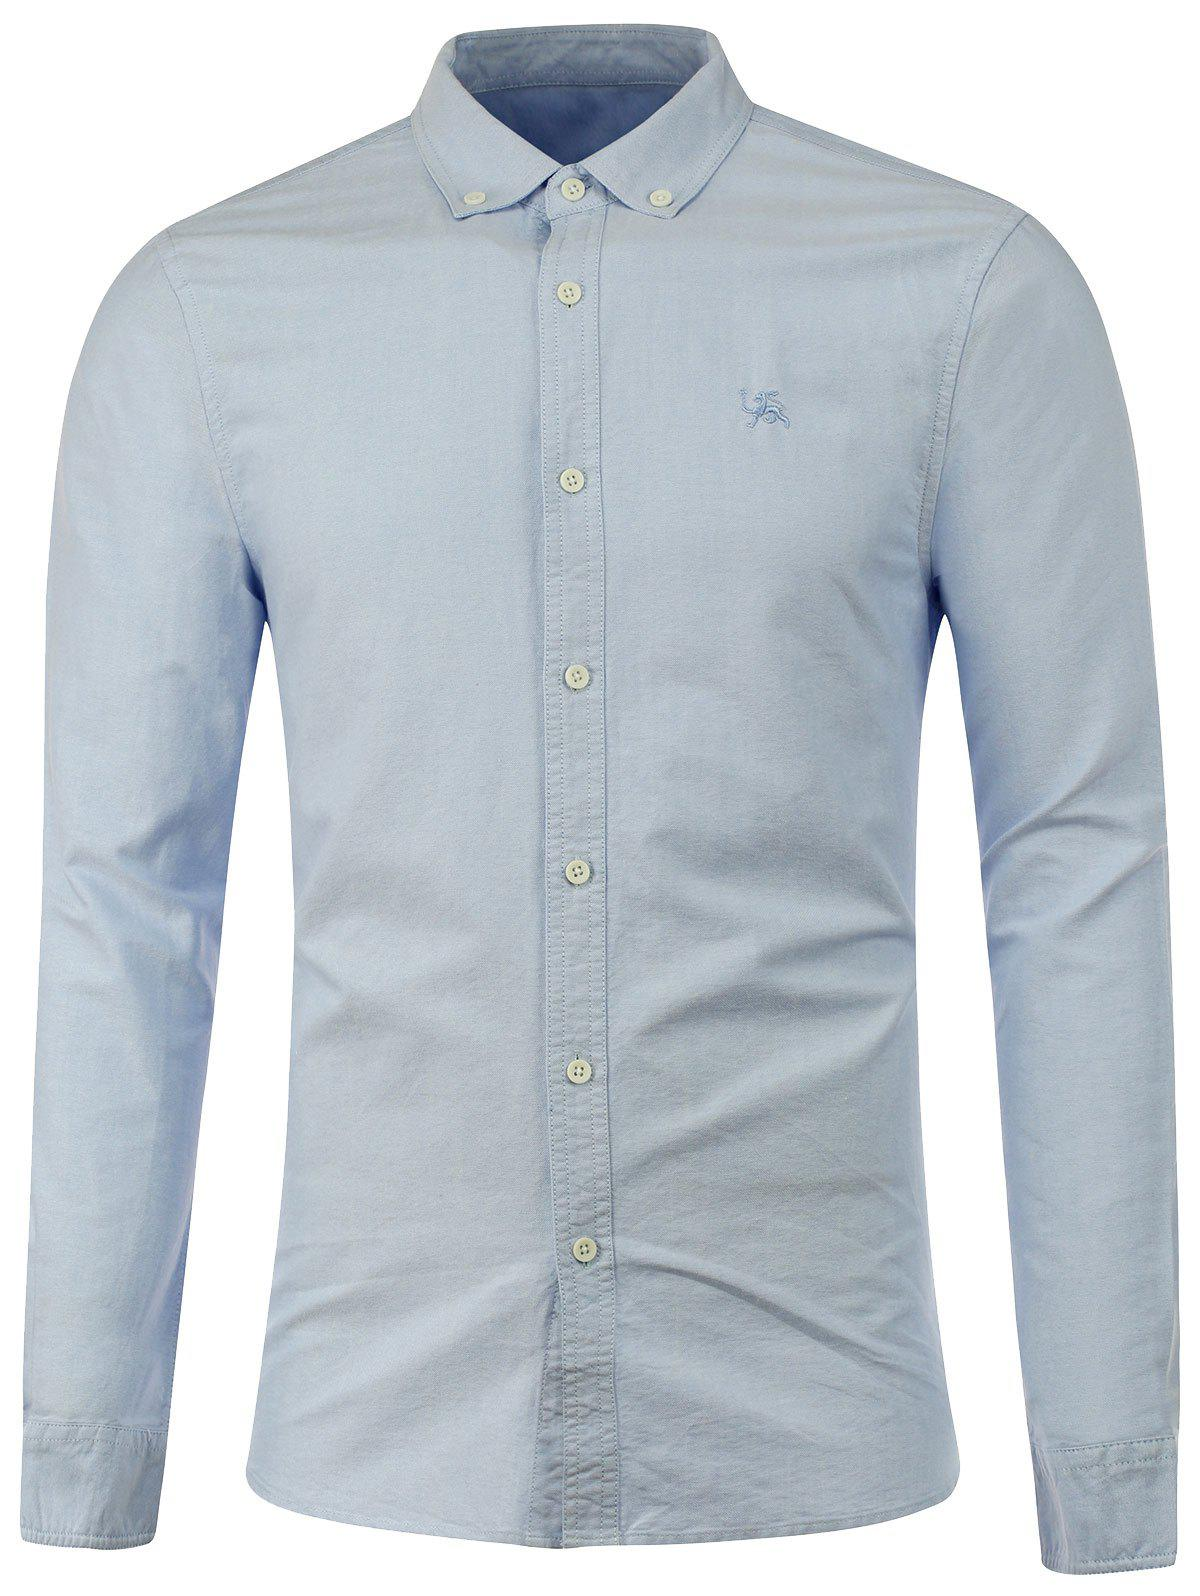 Long Sleeves Embroidered Button Down Shirt - BLUE S